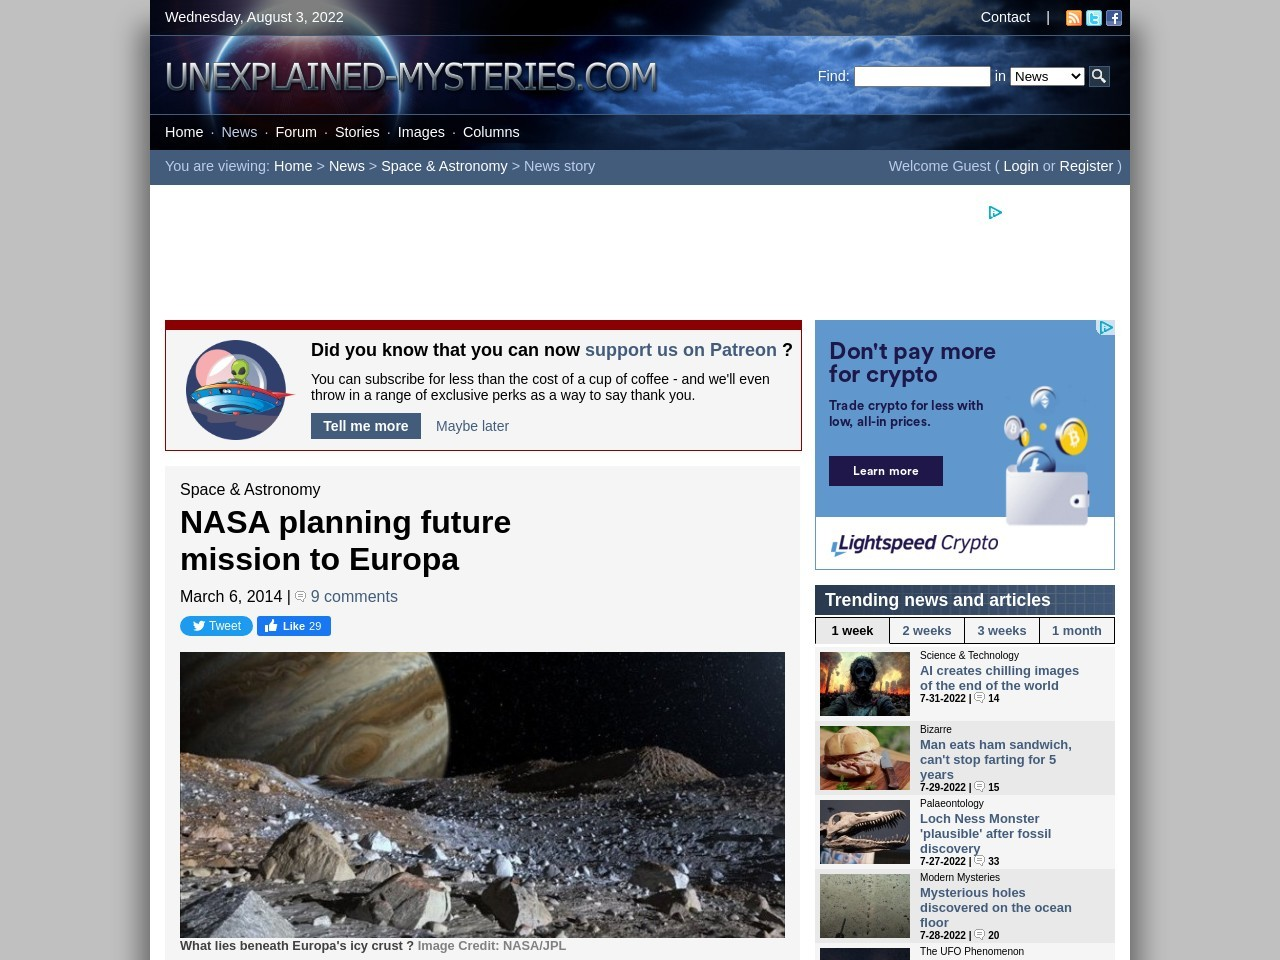 NASA planning future mission to Europa